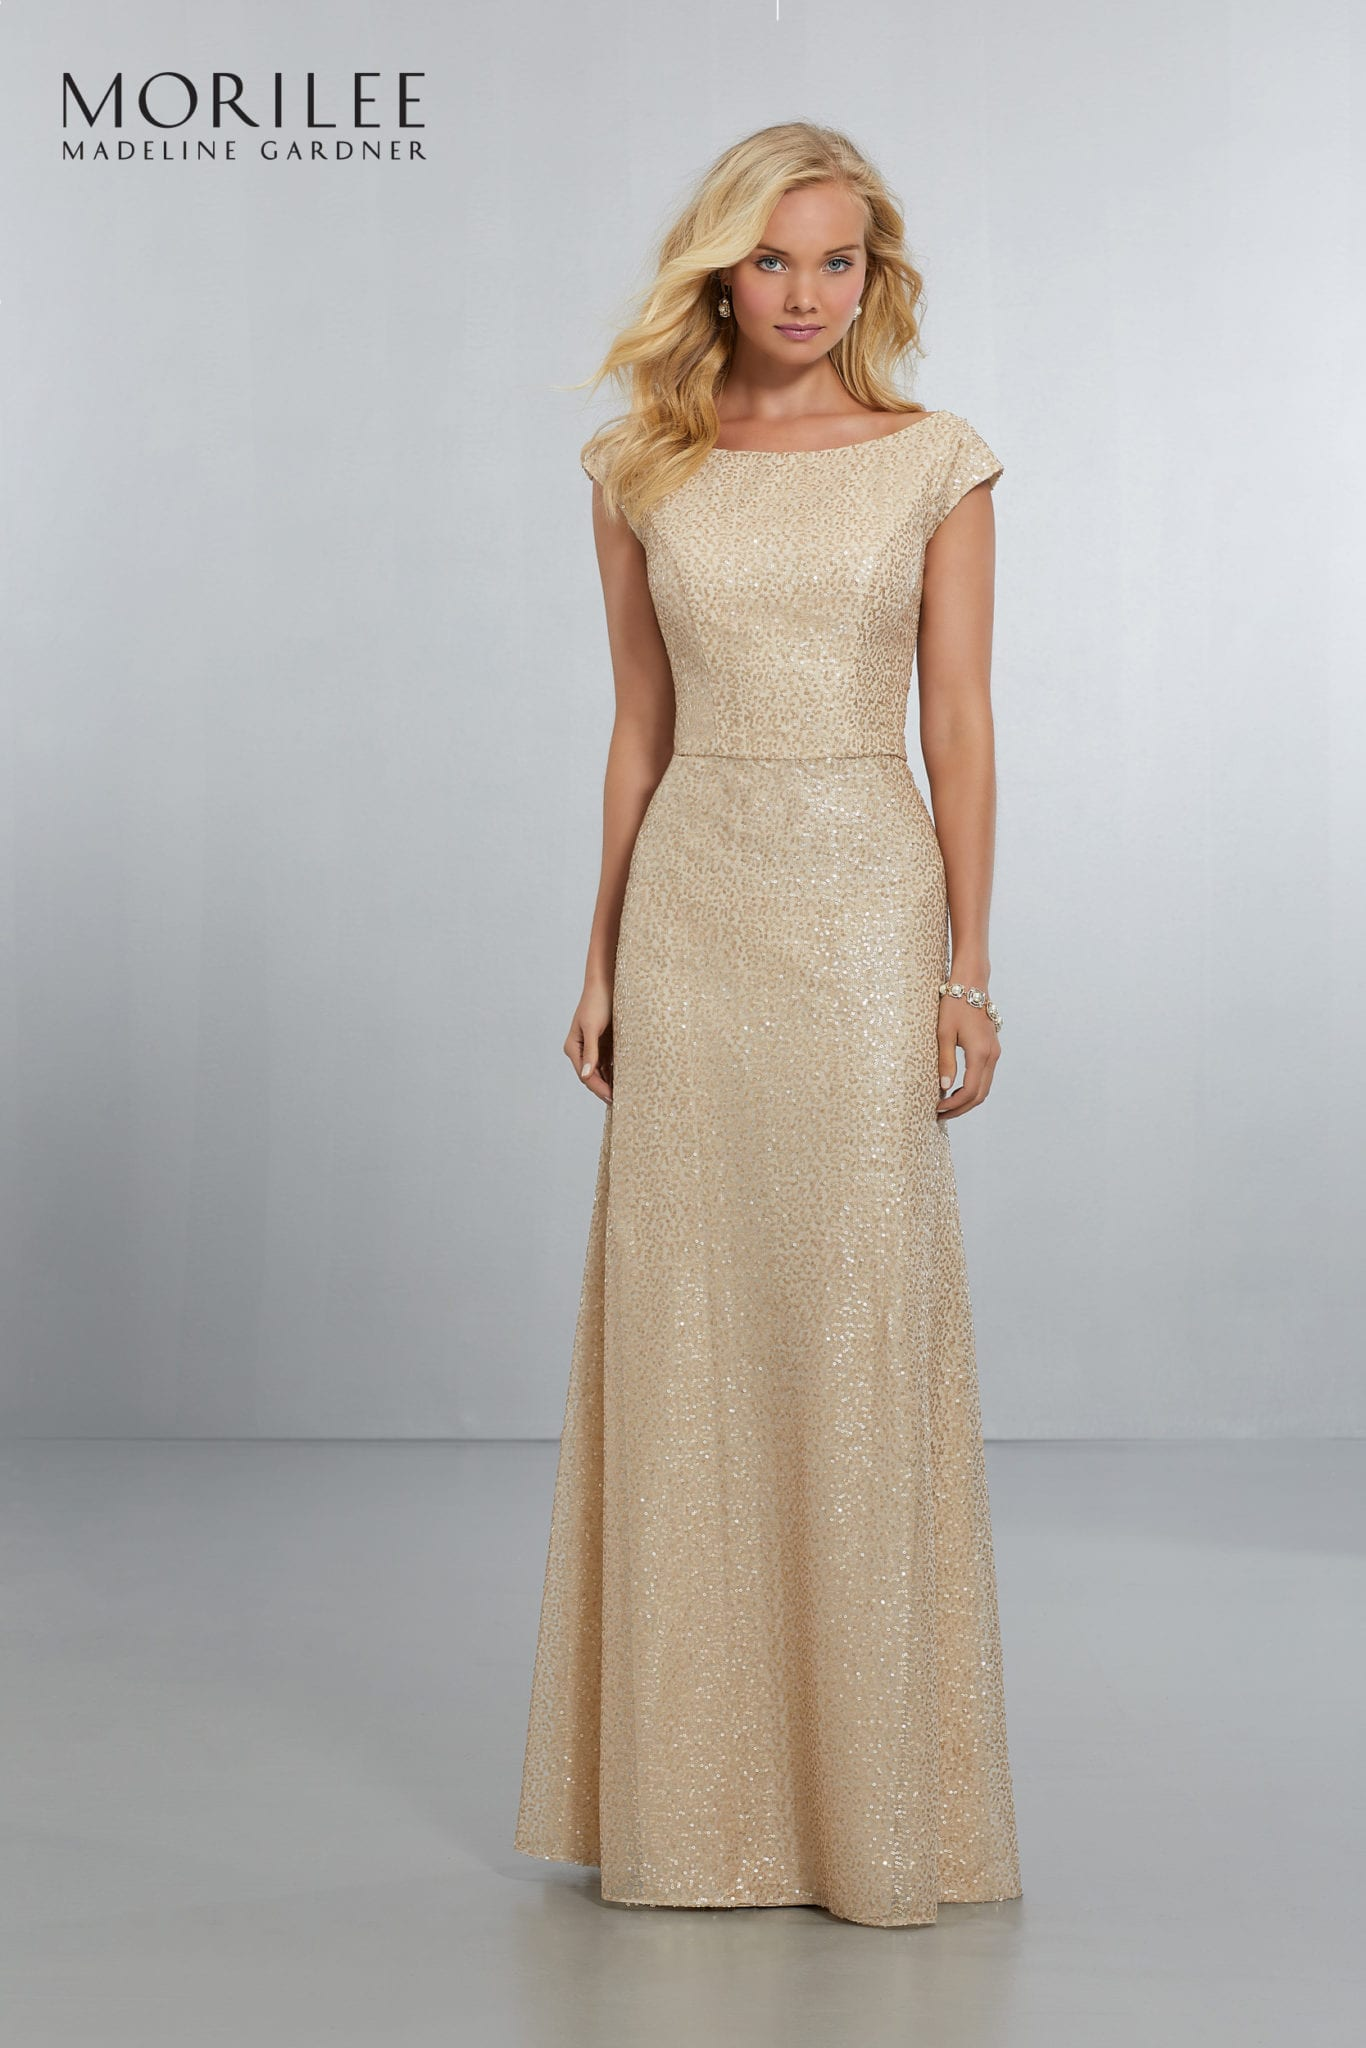 to wear - Bridesmaid Brown dresses in gorgeous mode pictures video